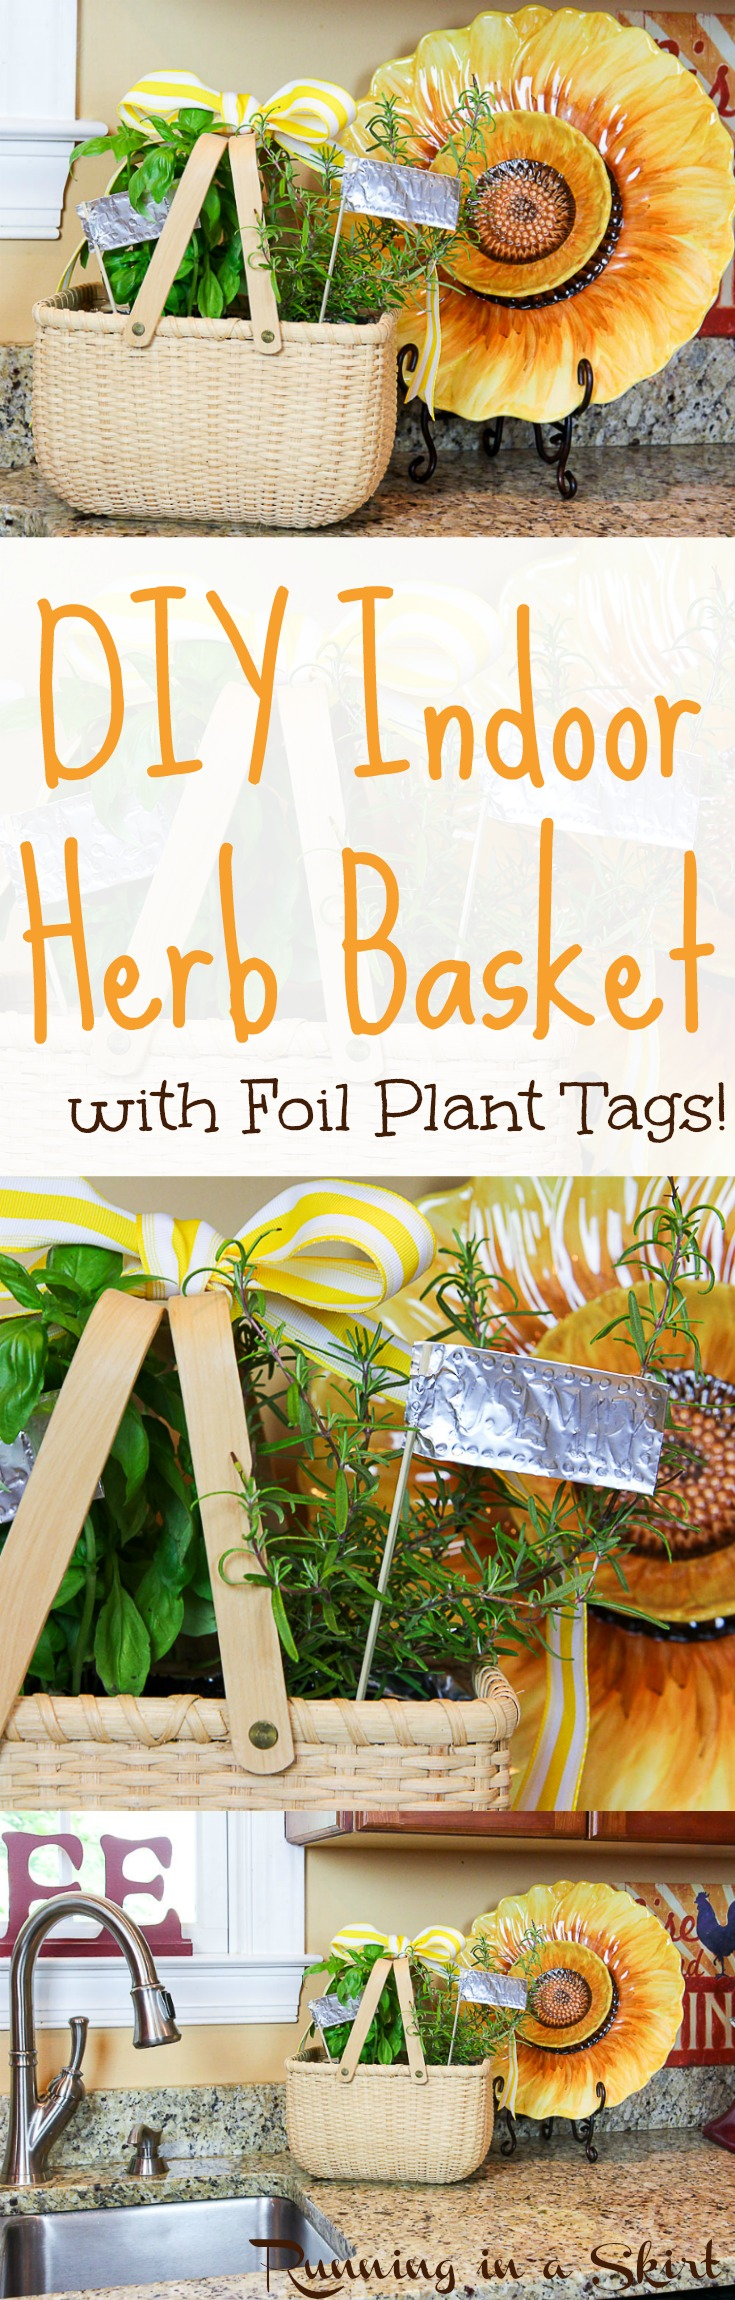 How to make an Indoor Herb Garden with foil plant tags